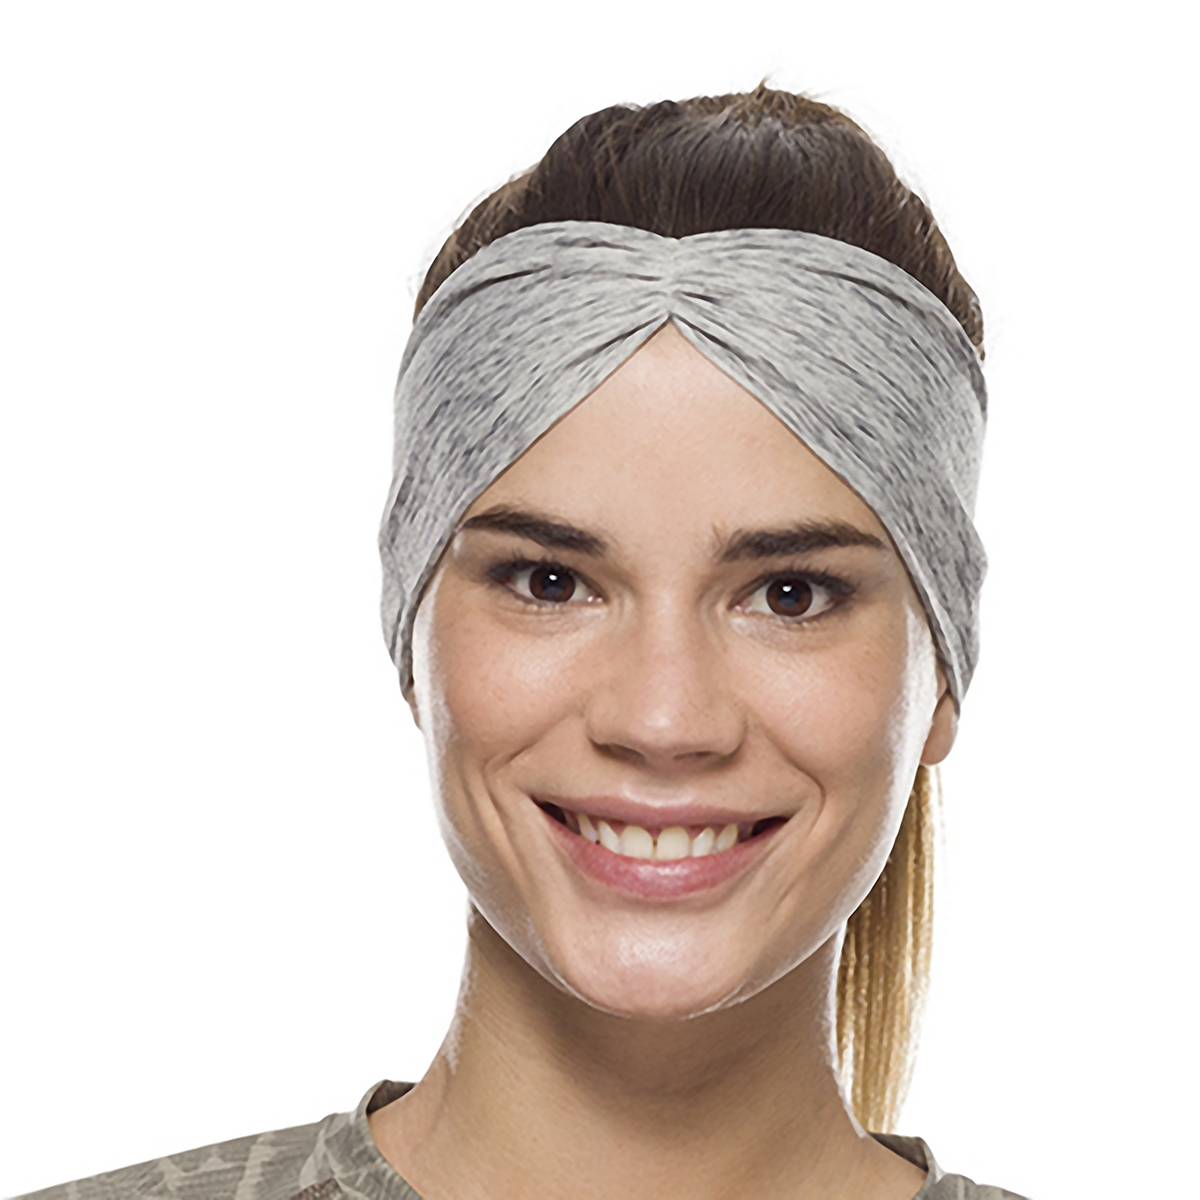 Buff Coolnet UV+ Tapered Headband - Color: Grey Heather, Grey Heather, large, image 3